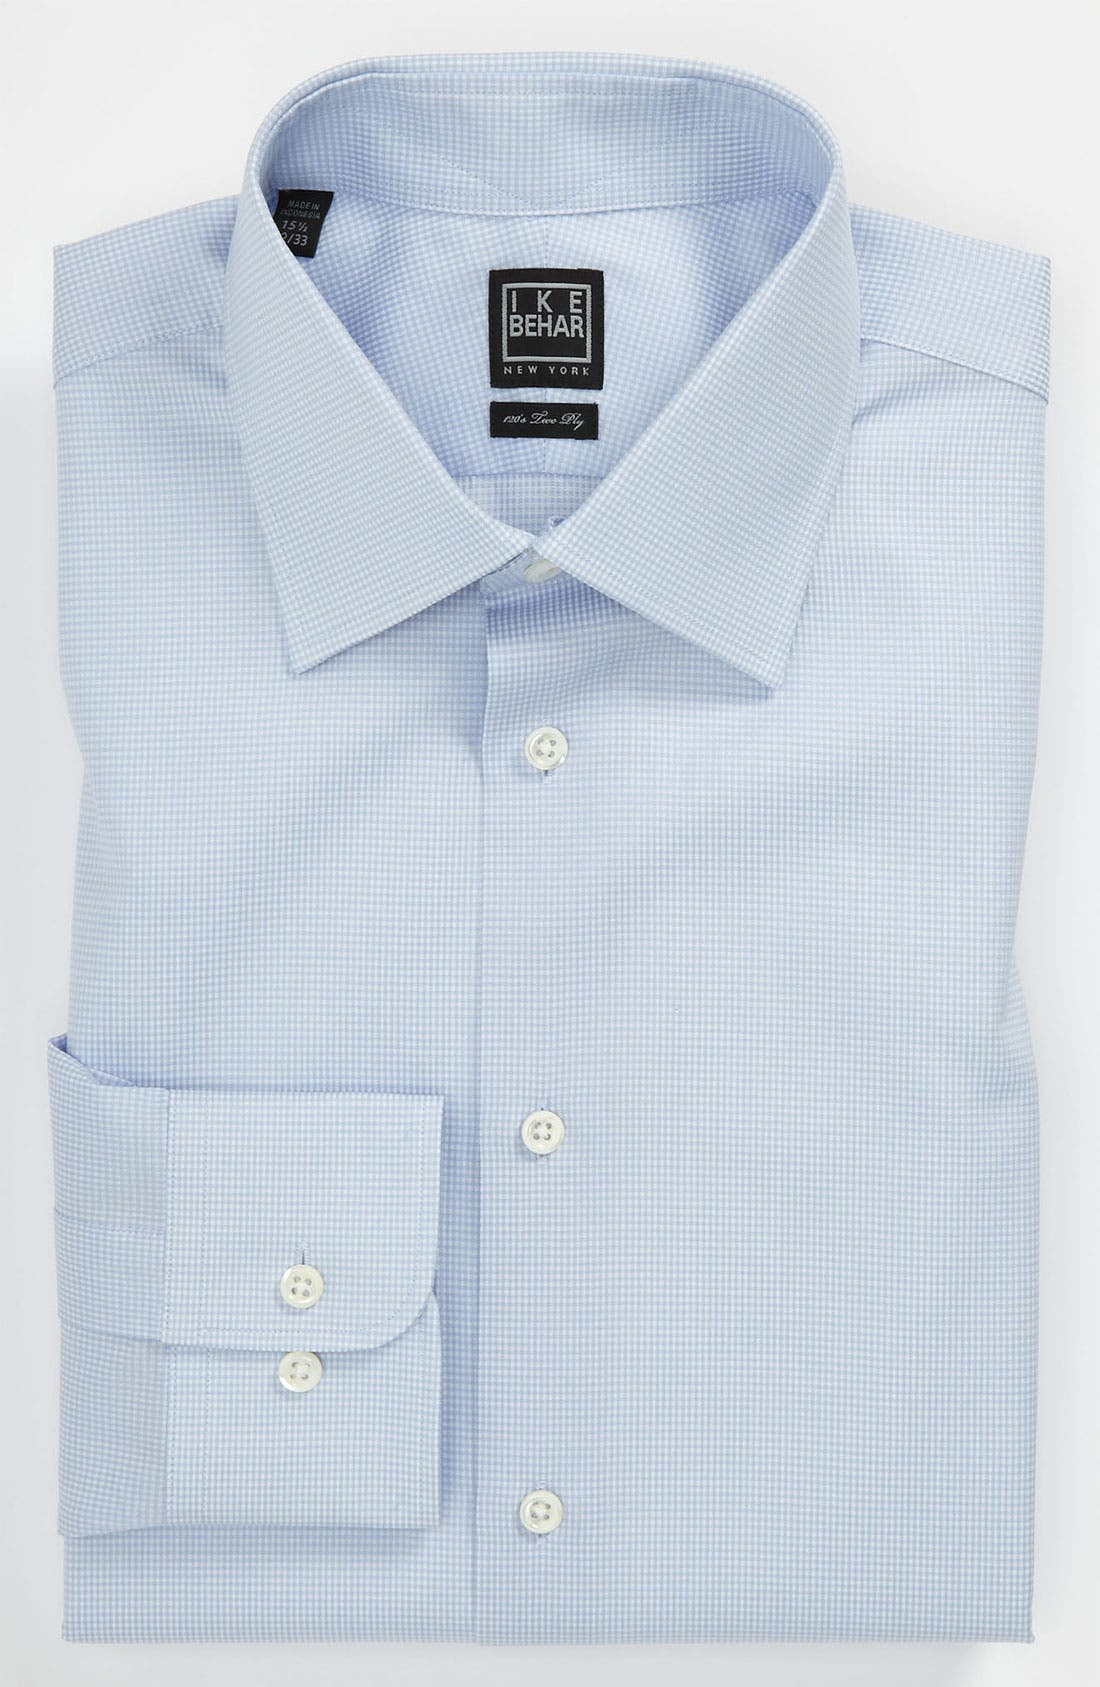 Main Image - Ike Behar Regular Fit Tonal Texture Dress Shirt (Online Only)